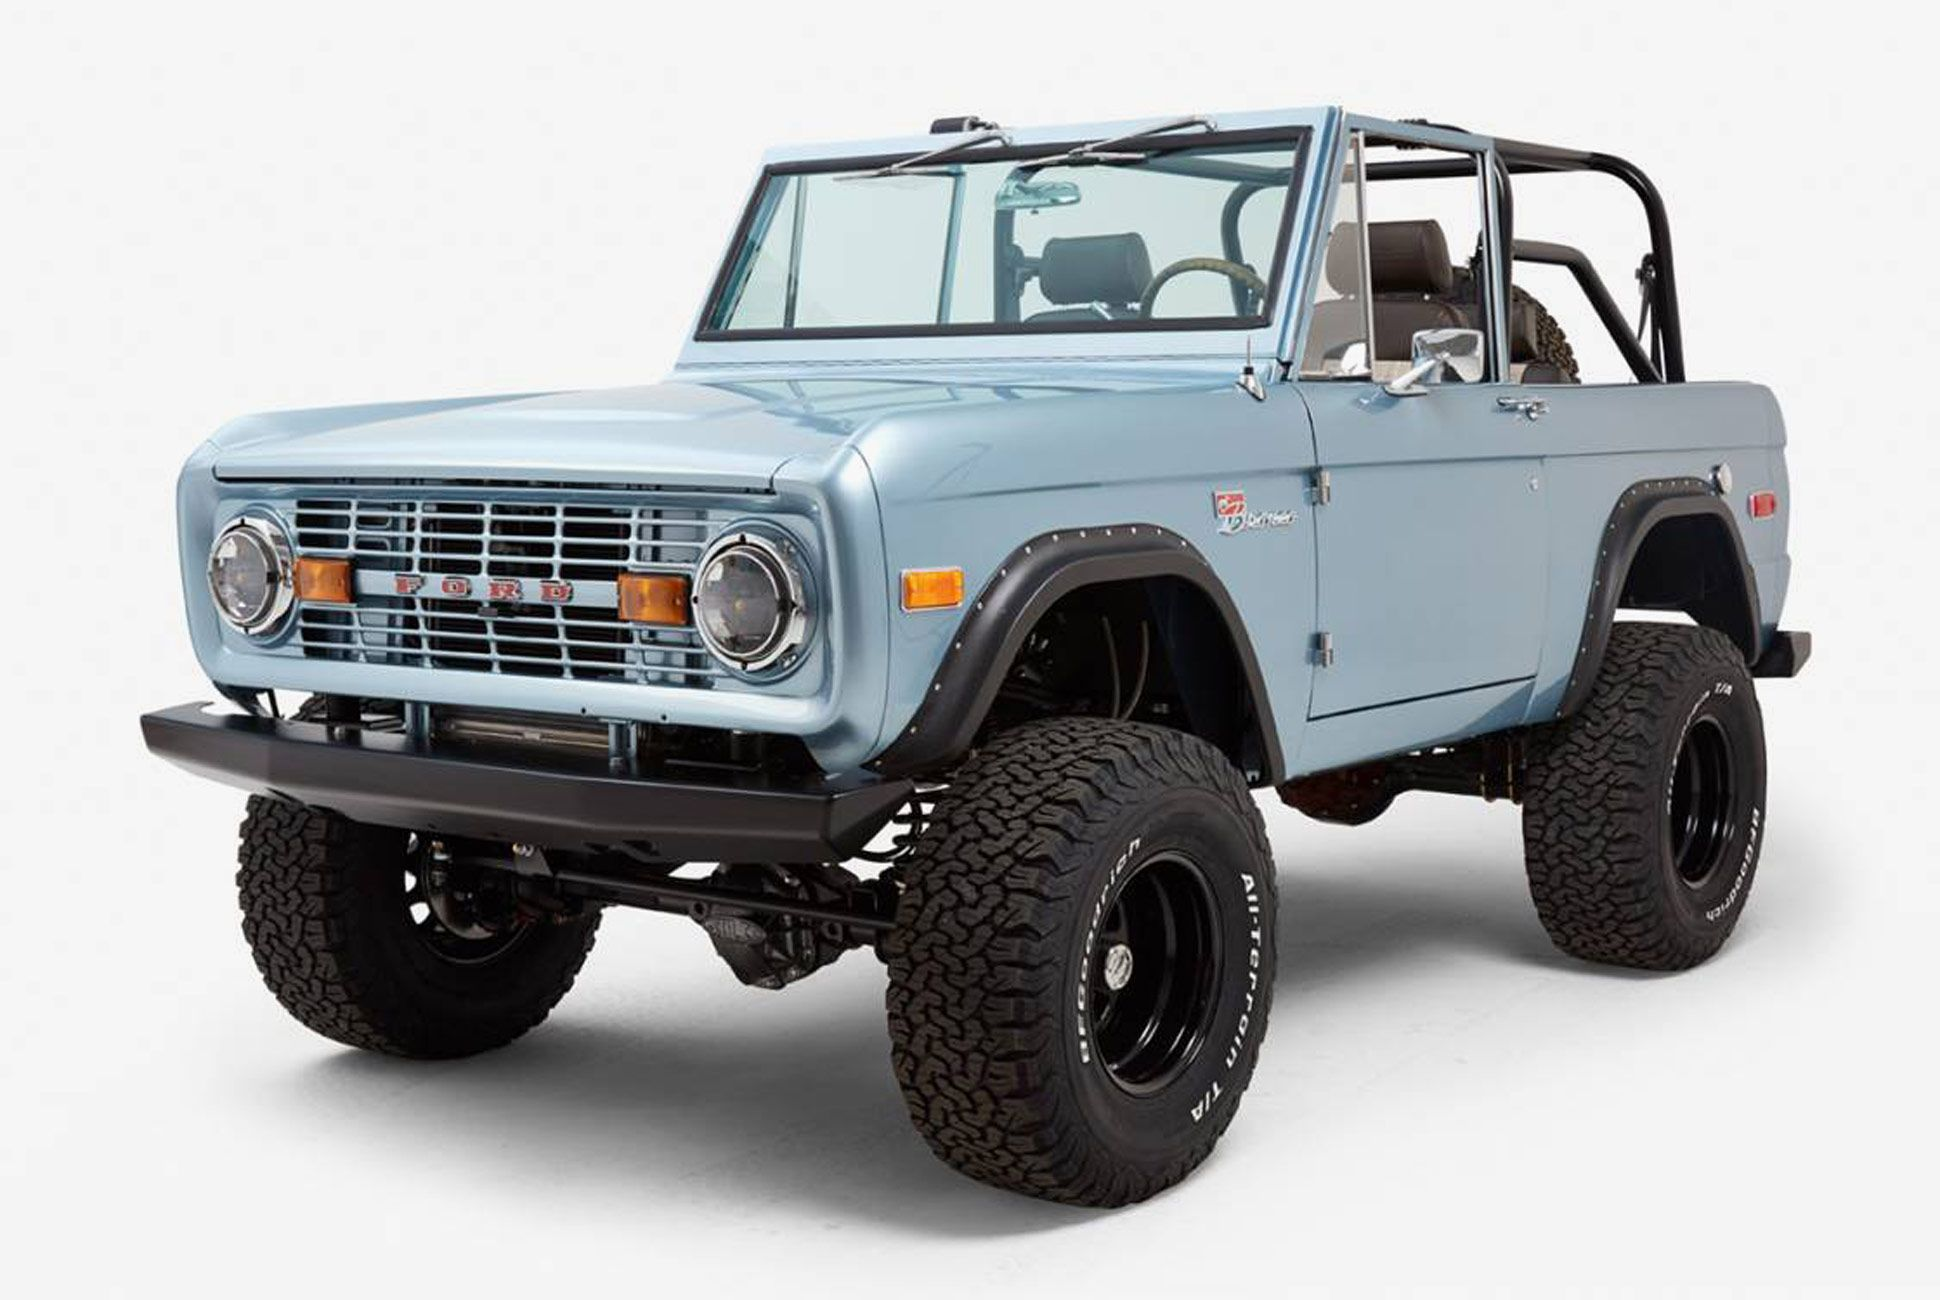 43++ Ford bronco models by year ideas in 2021